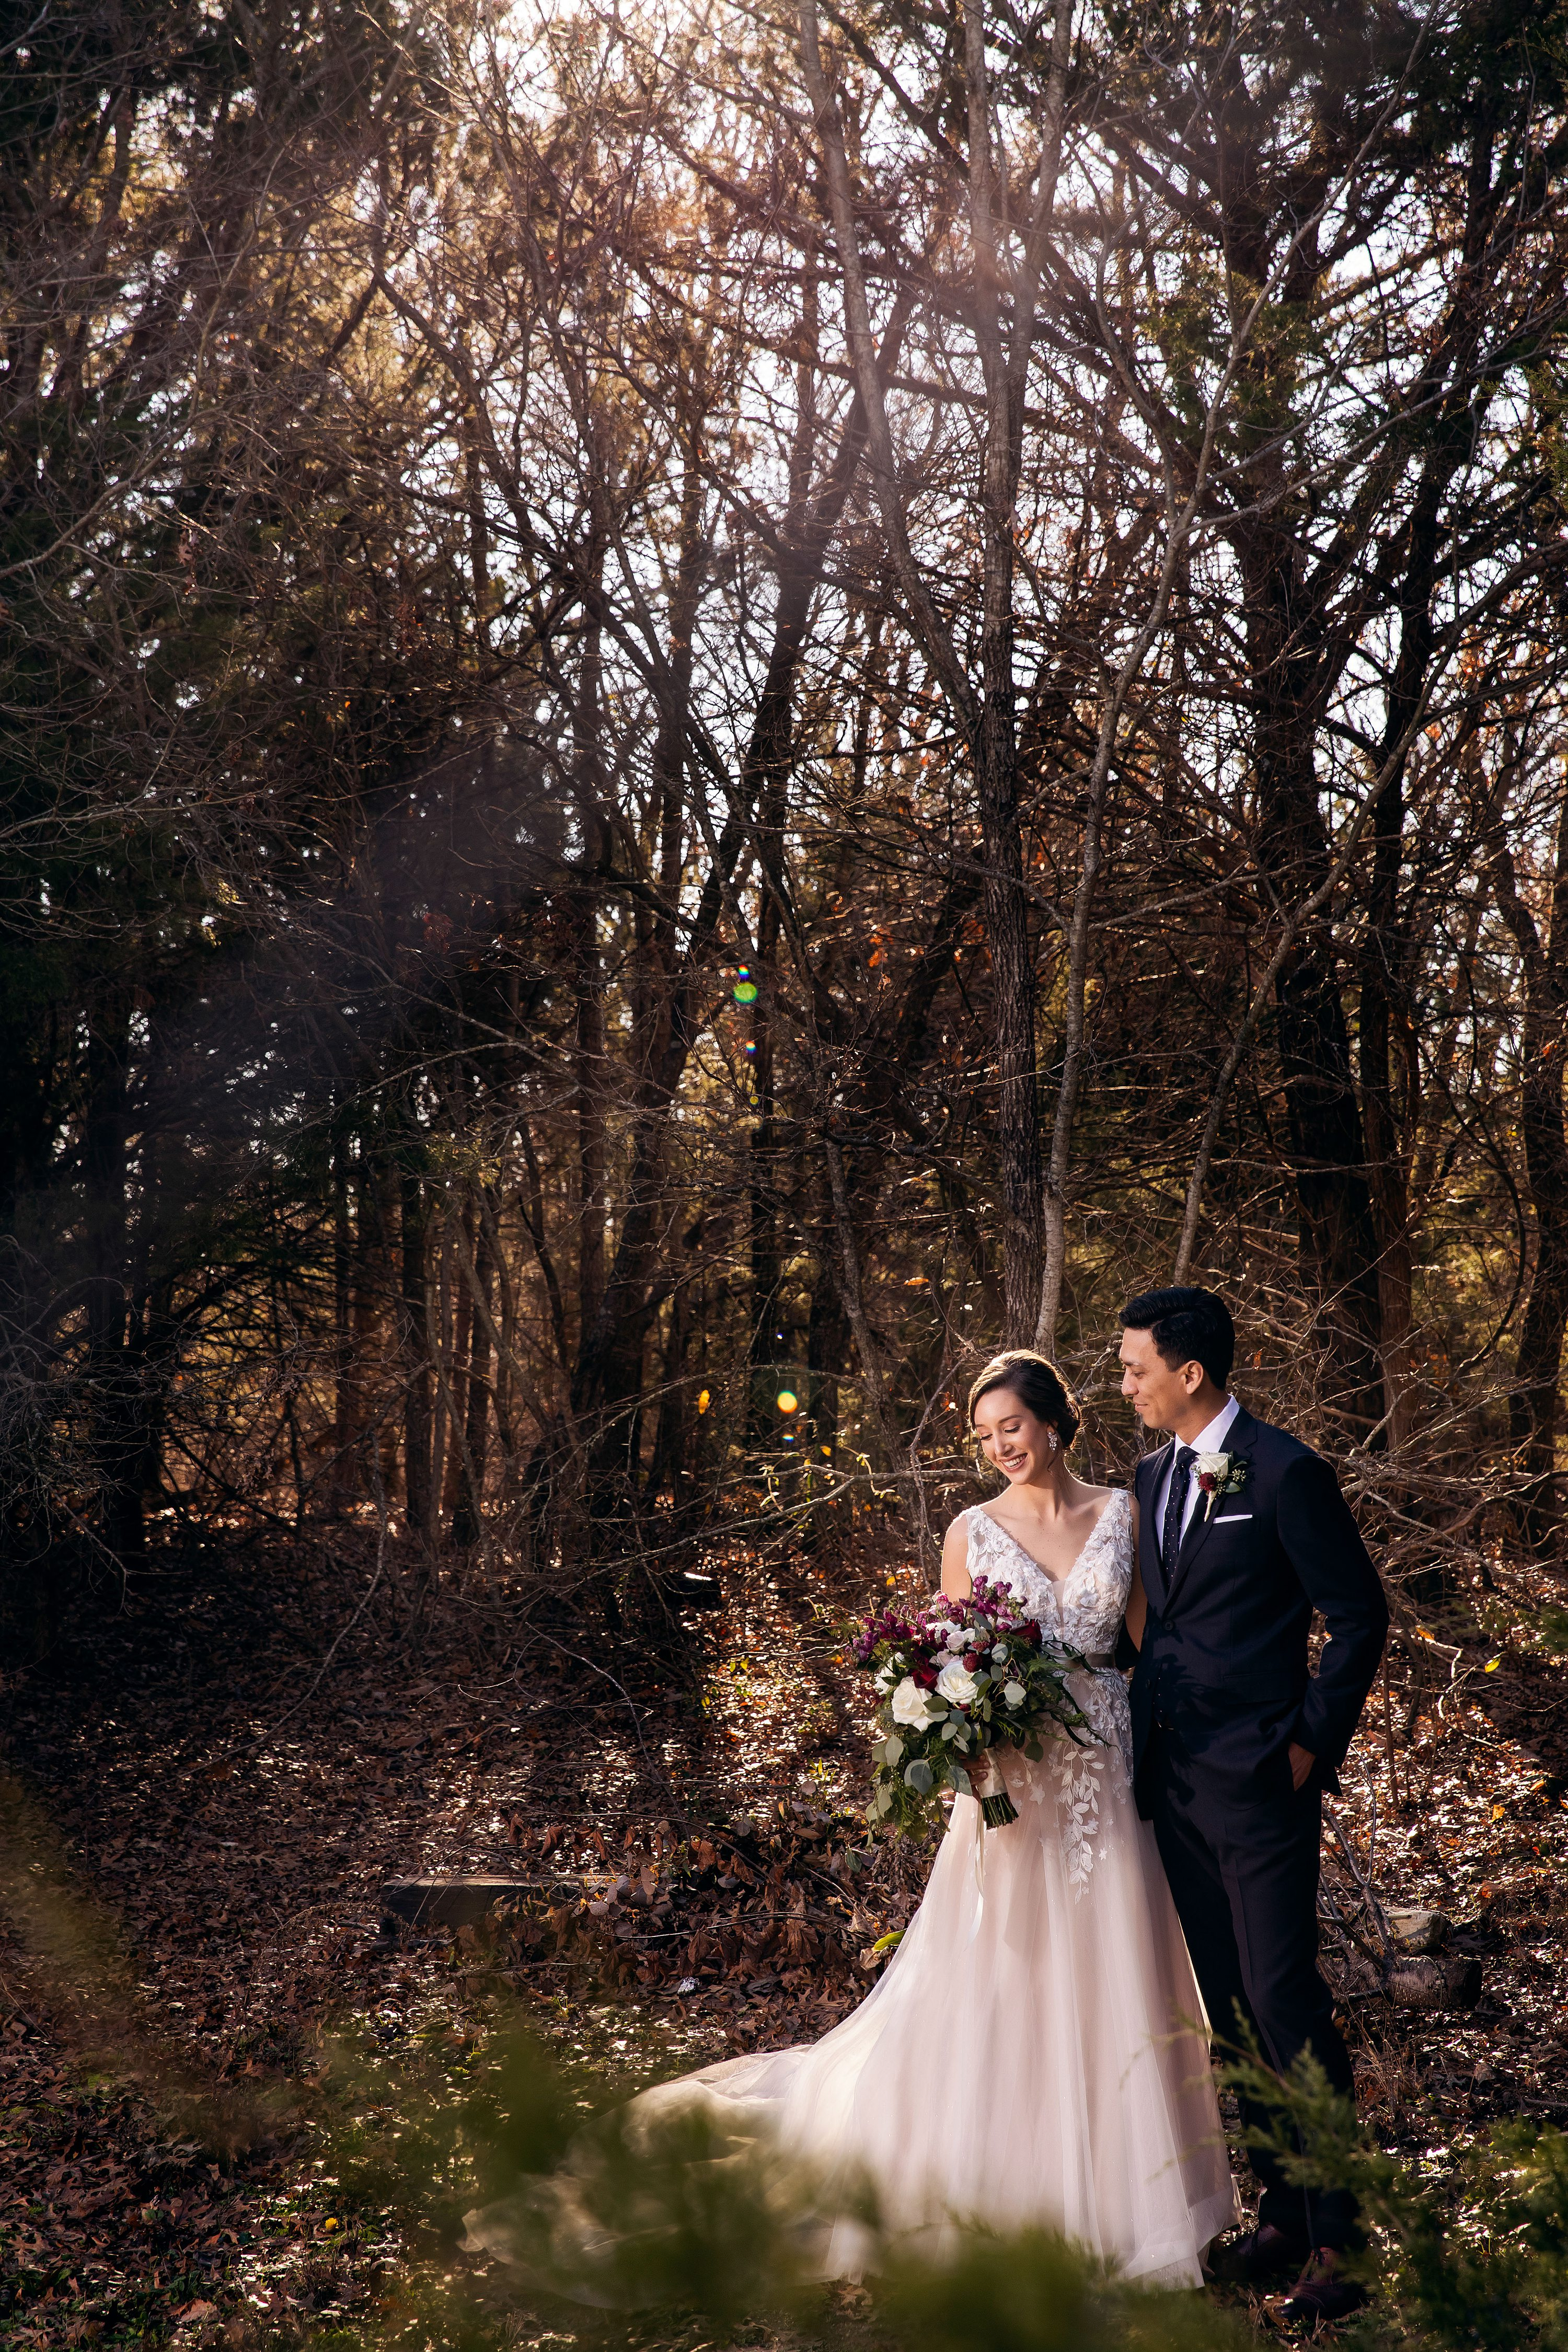 Best Wedding photographer in Dallas Texas,Outside wedding